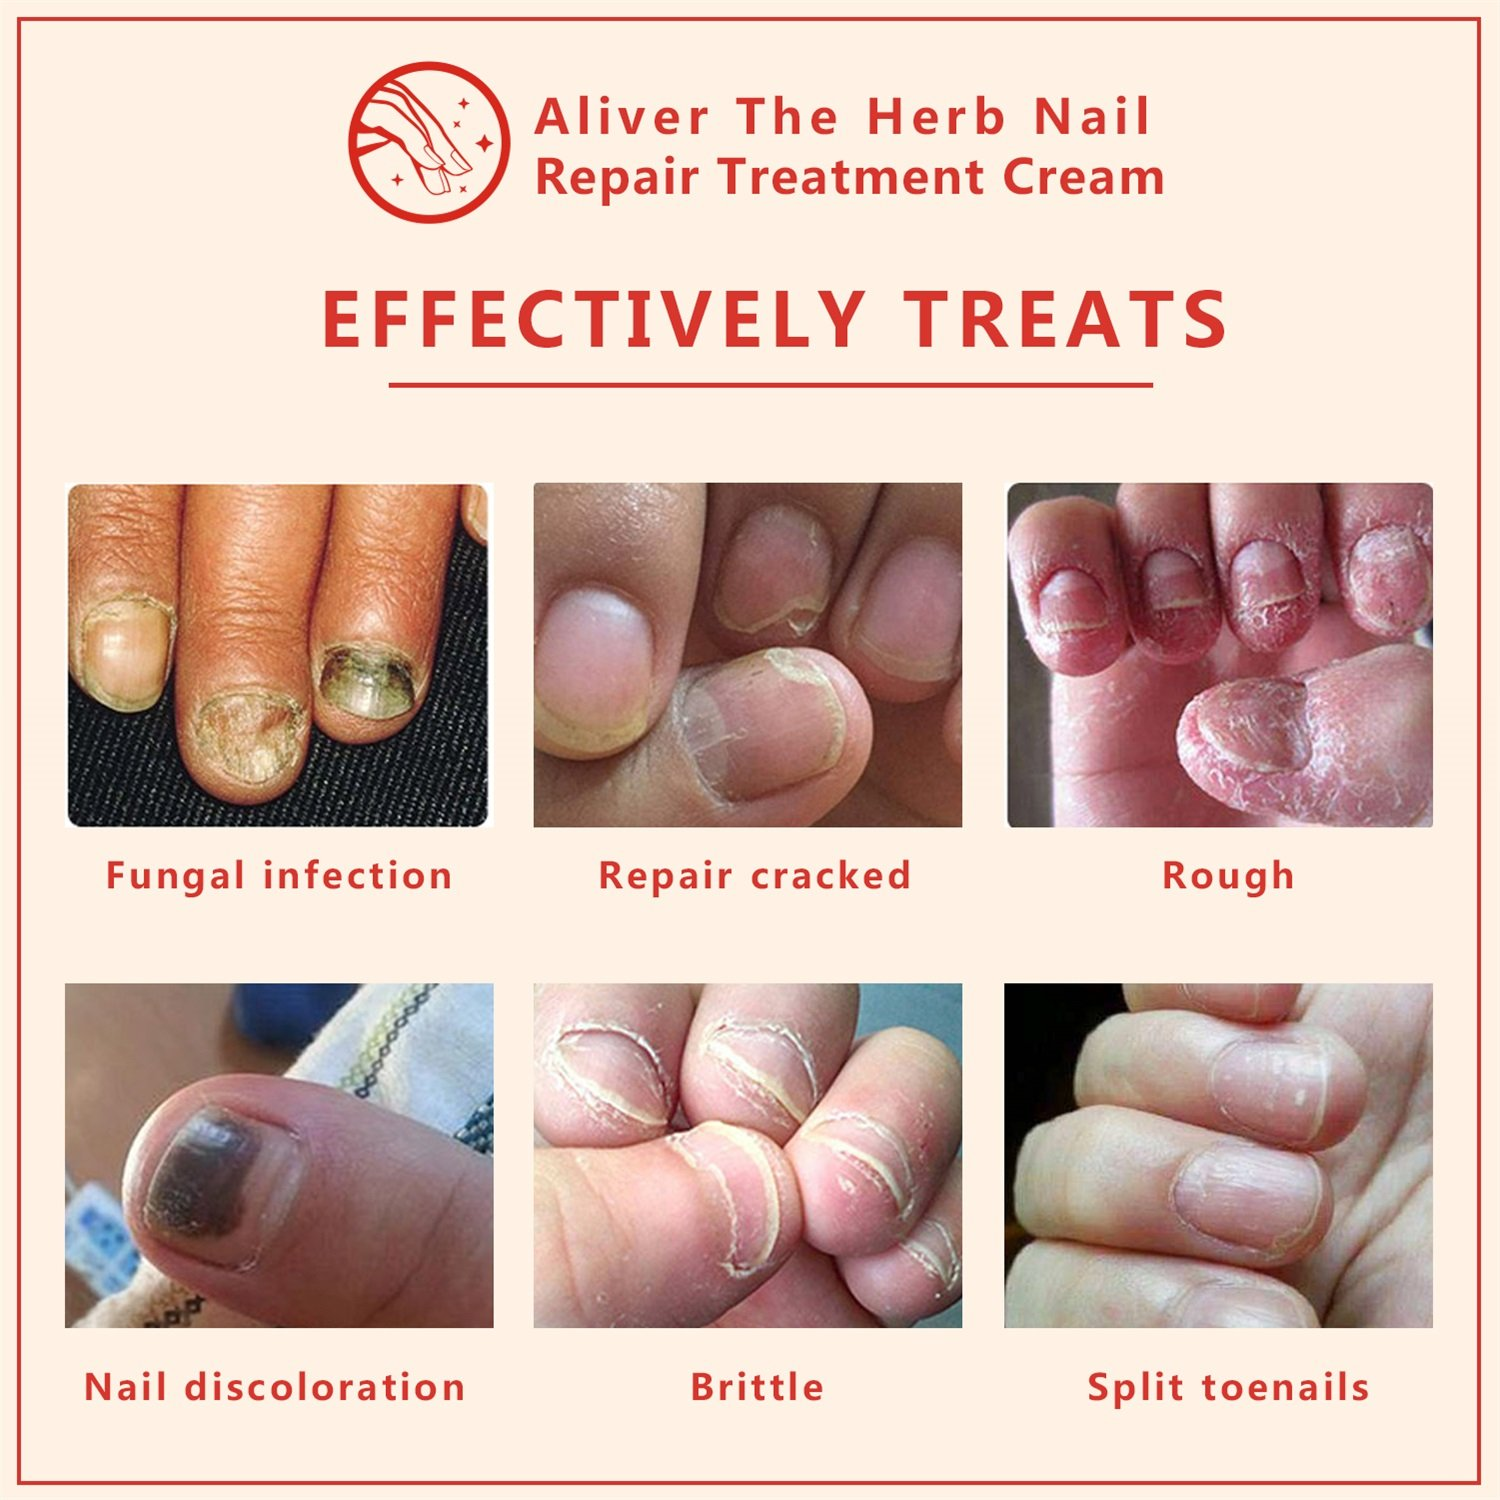 Nail Fungal Treatment, Aliver The Herb Foot Nail Repair Cream Protector, Nail Care Treatment of Anti-Fungal Cream, Effective Against Nail Fungus, Restores the Healthy Appearance of Nails (15g) by ALIVER (Image #4)